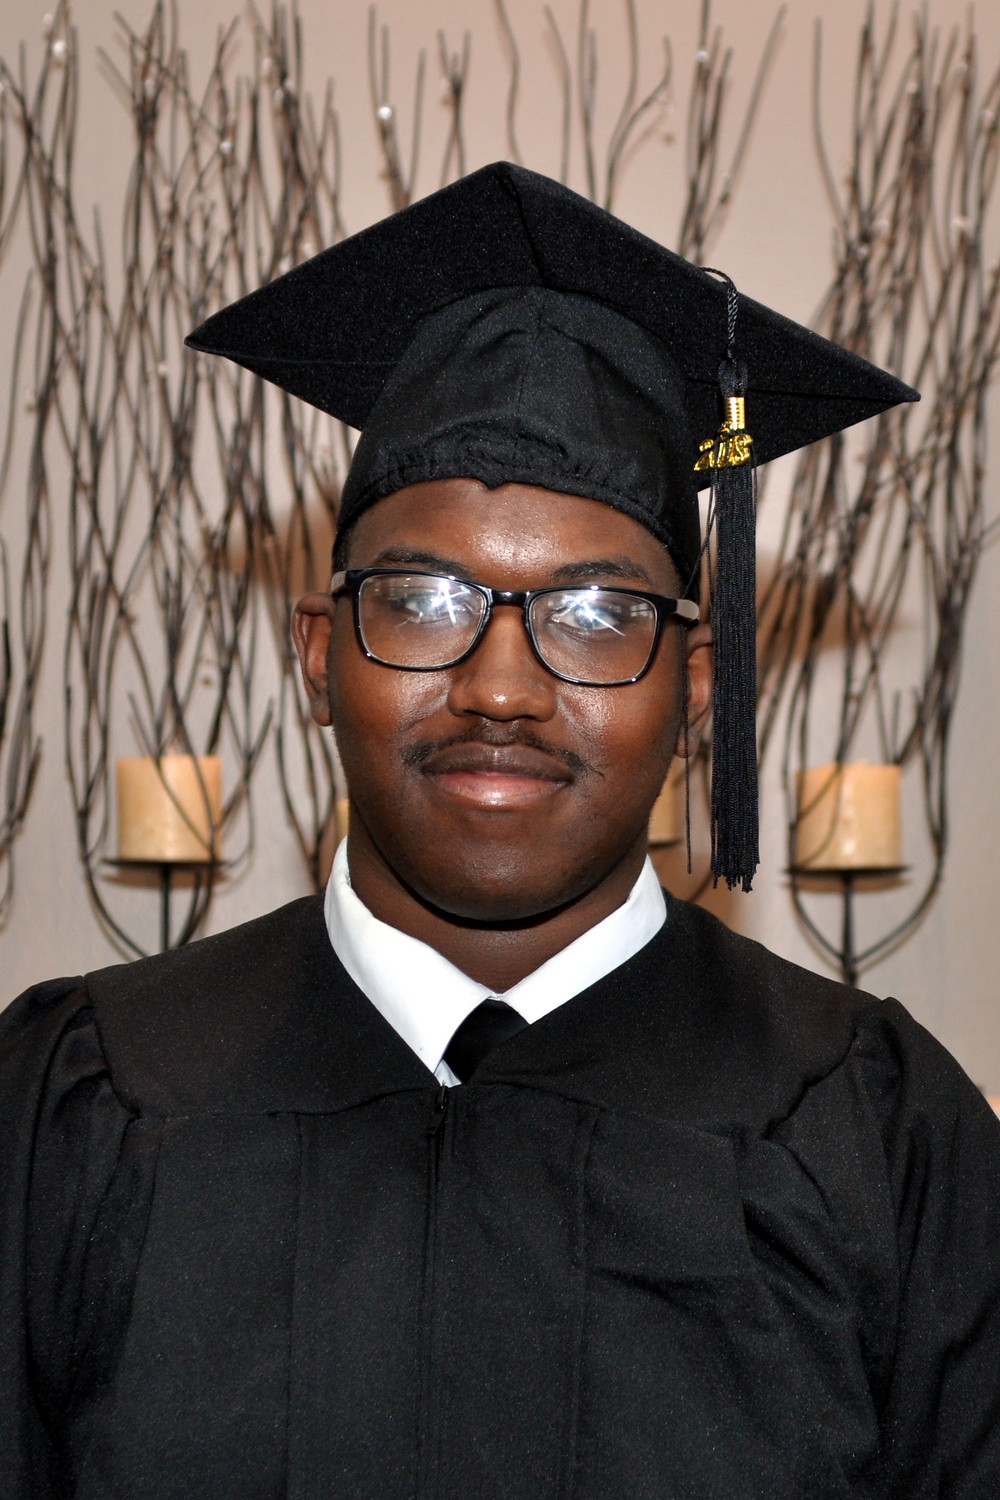 Kendrick Francis in his graduation cap and gown